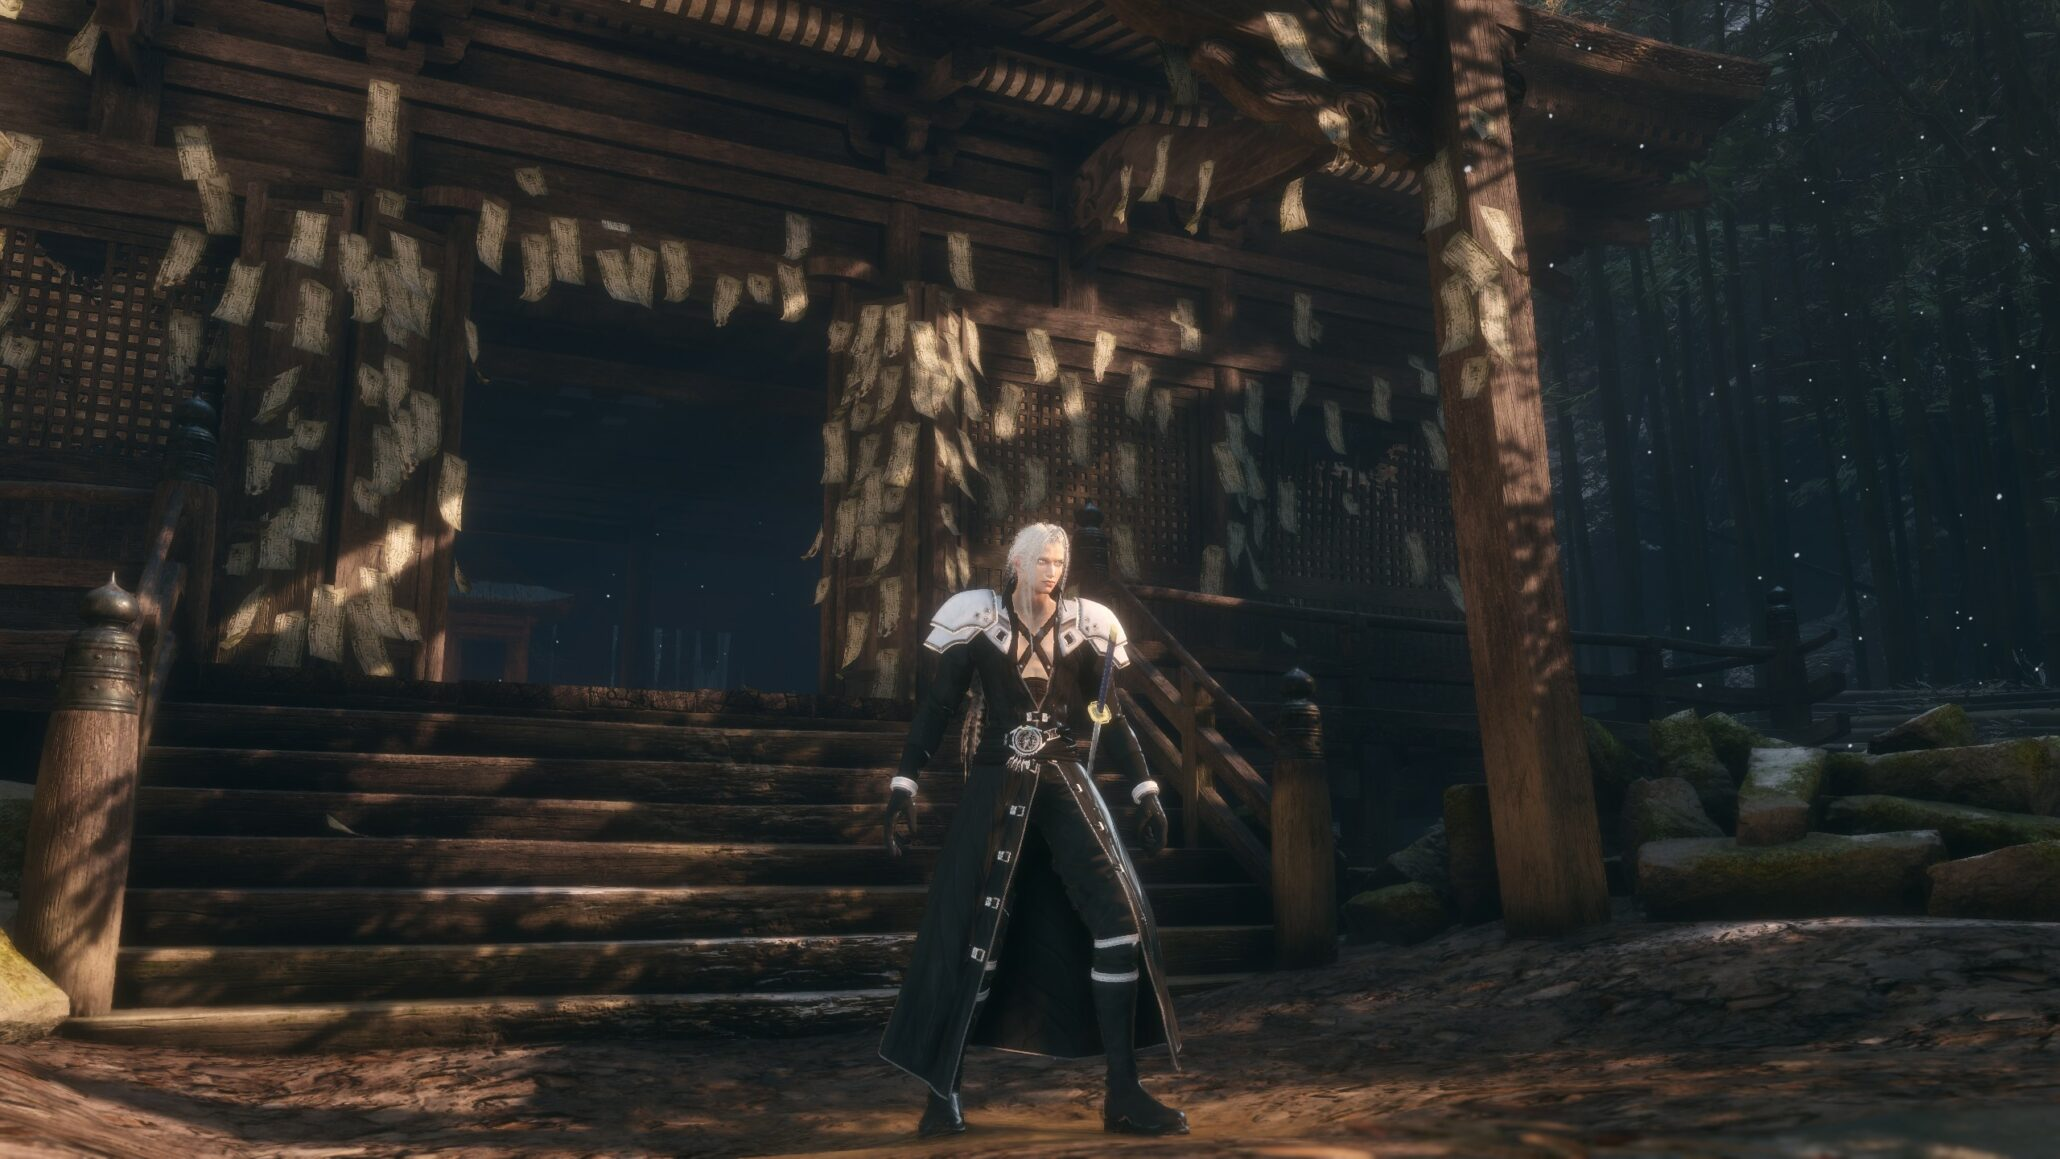 Sekiro Shadows Die Twice Updated Final Fantasy Vii Remake Sephiroth Mod Makes The Character Fully Playable